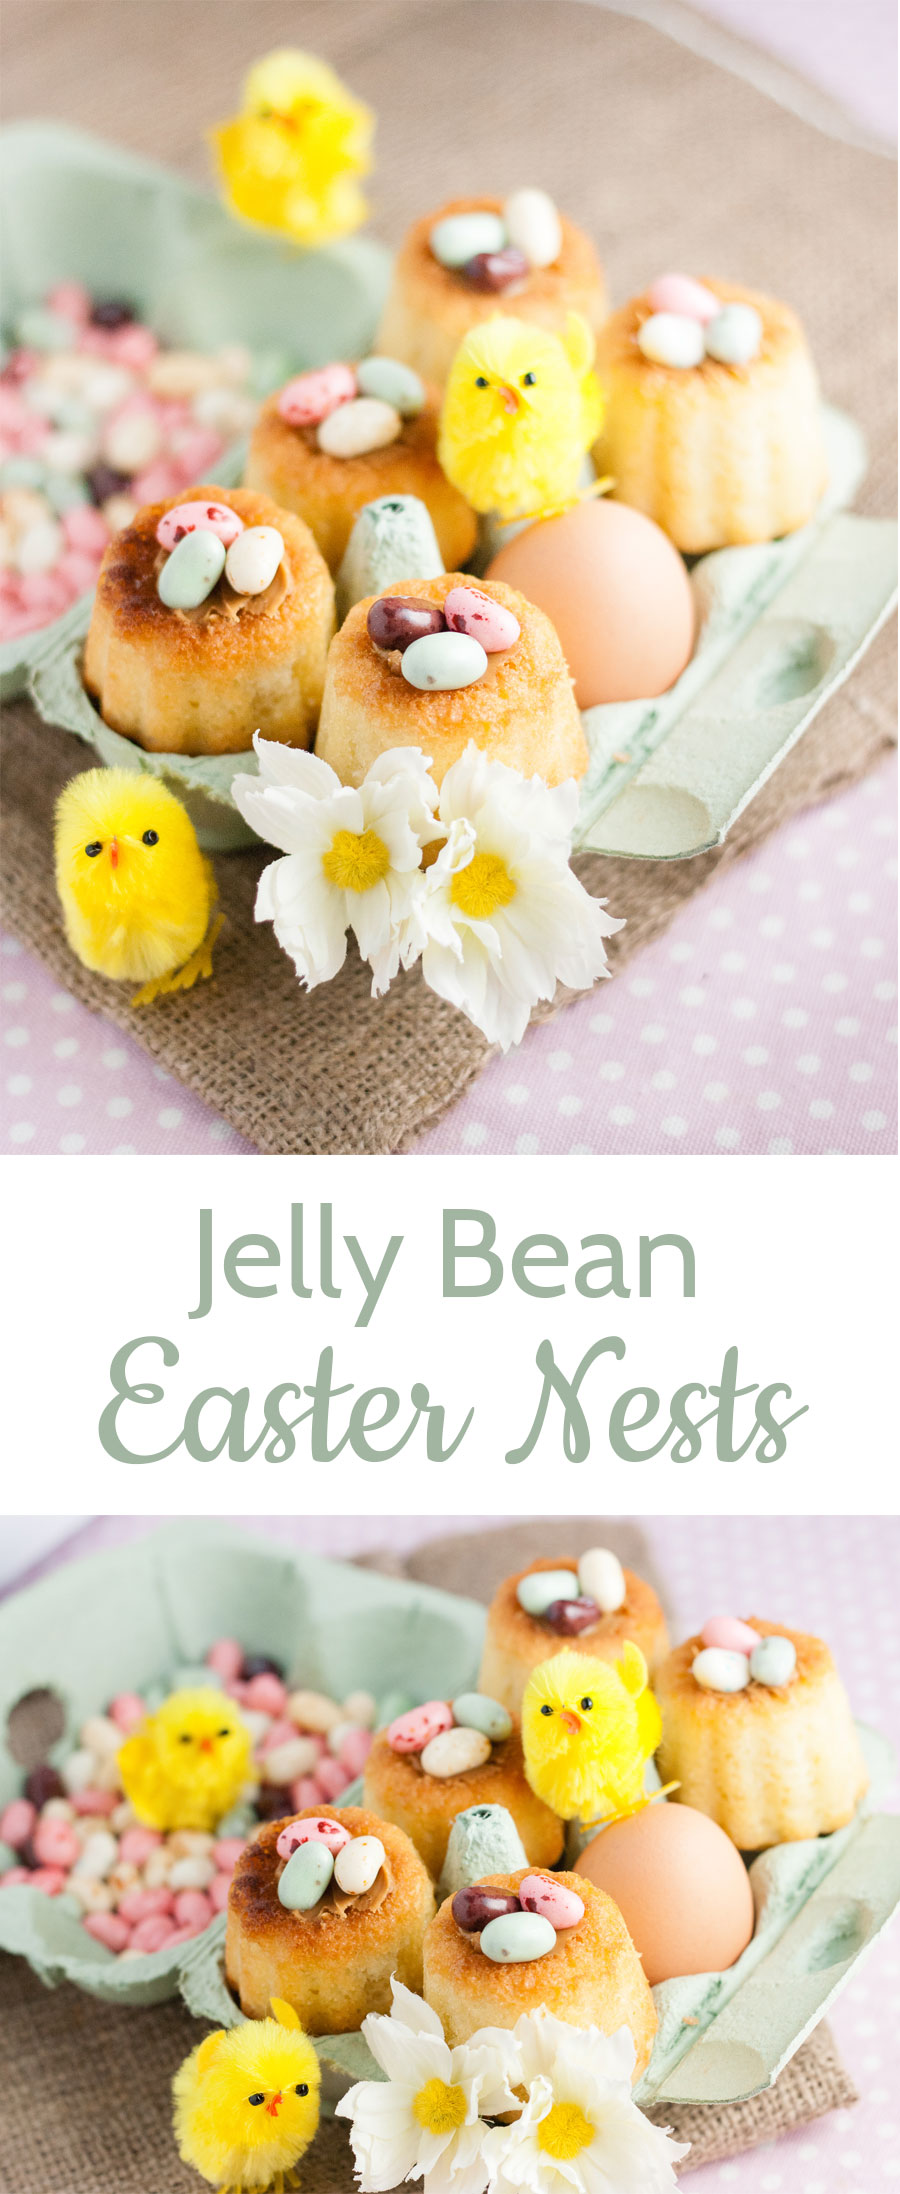 These cute jelly bean Easter nests are easy to make with a canelle mould and Madeleine batter